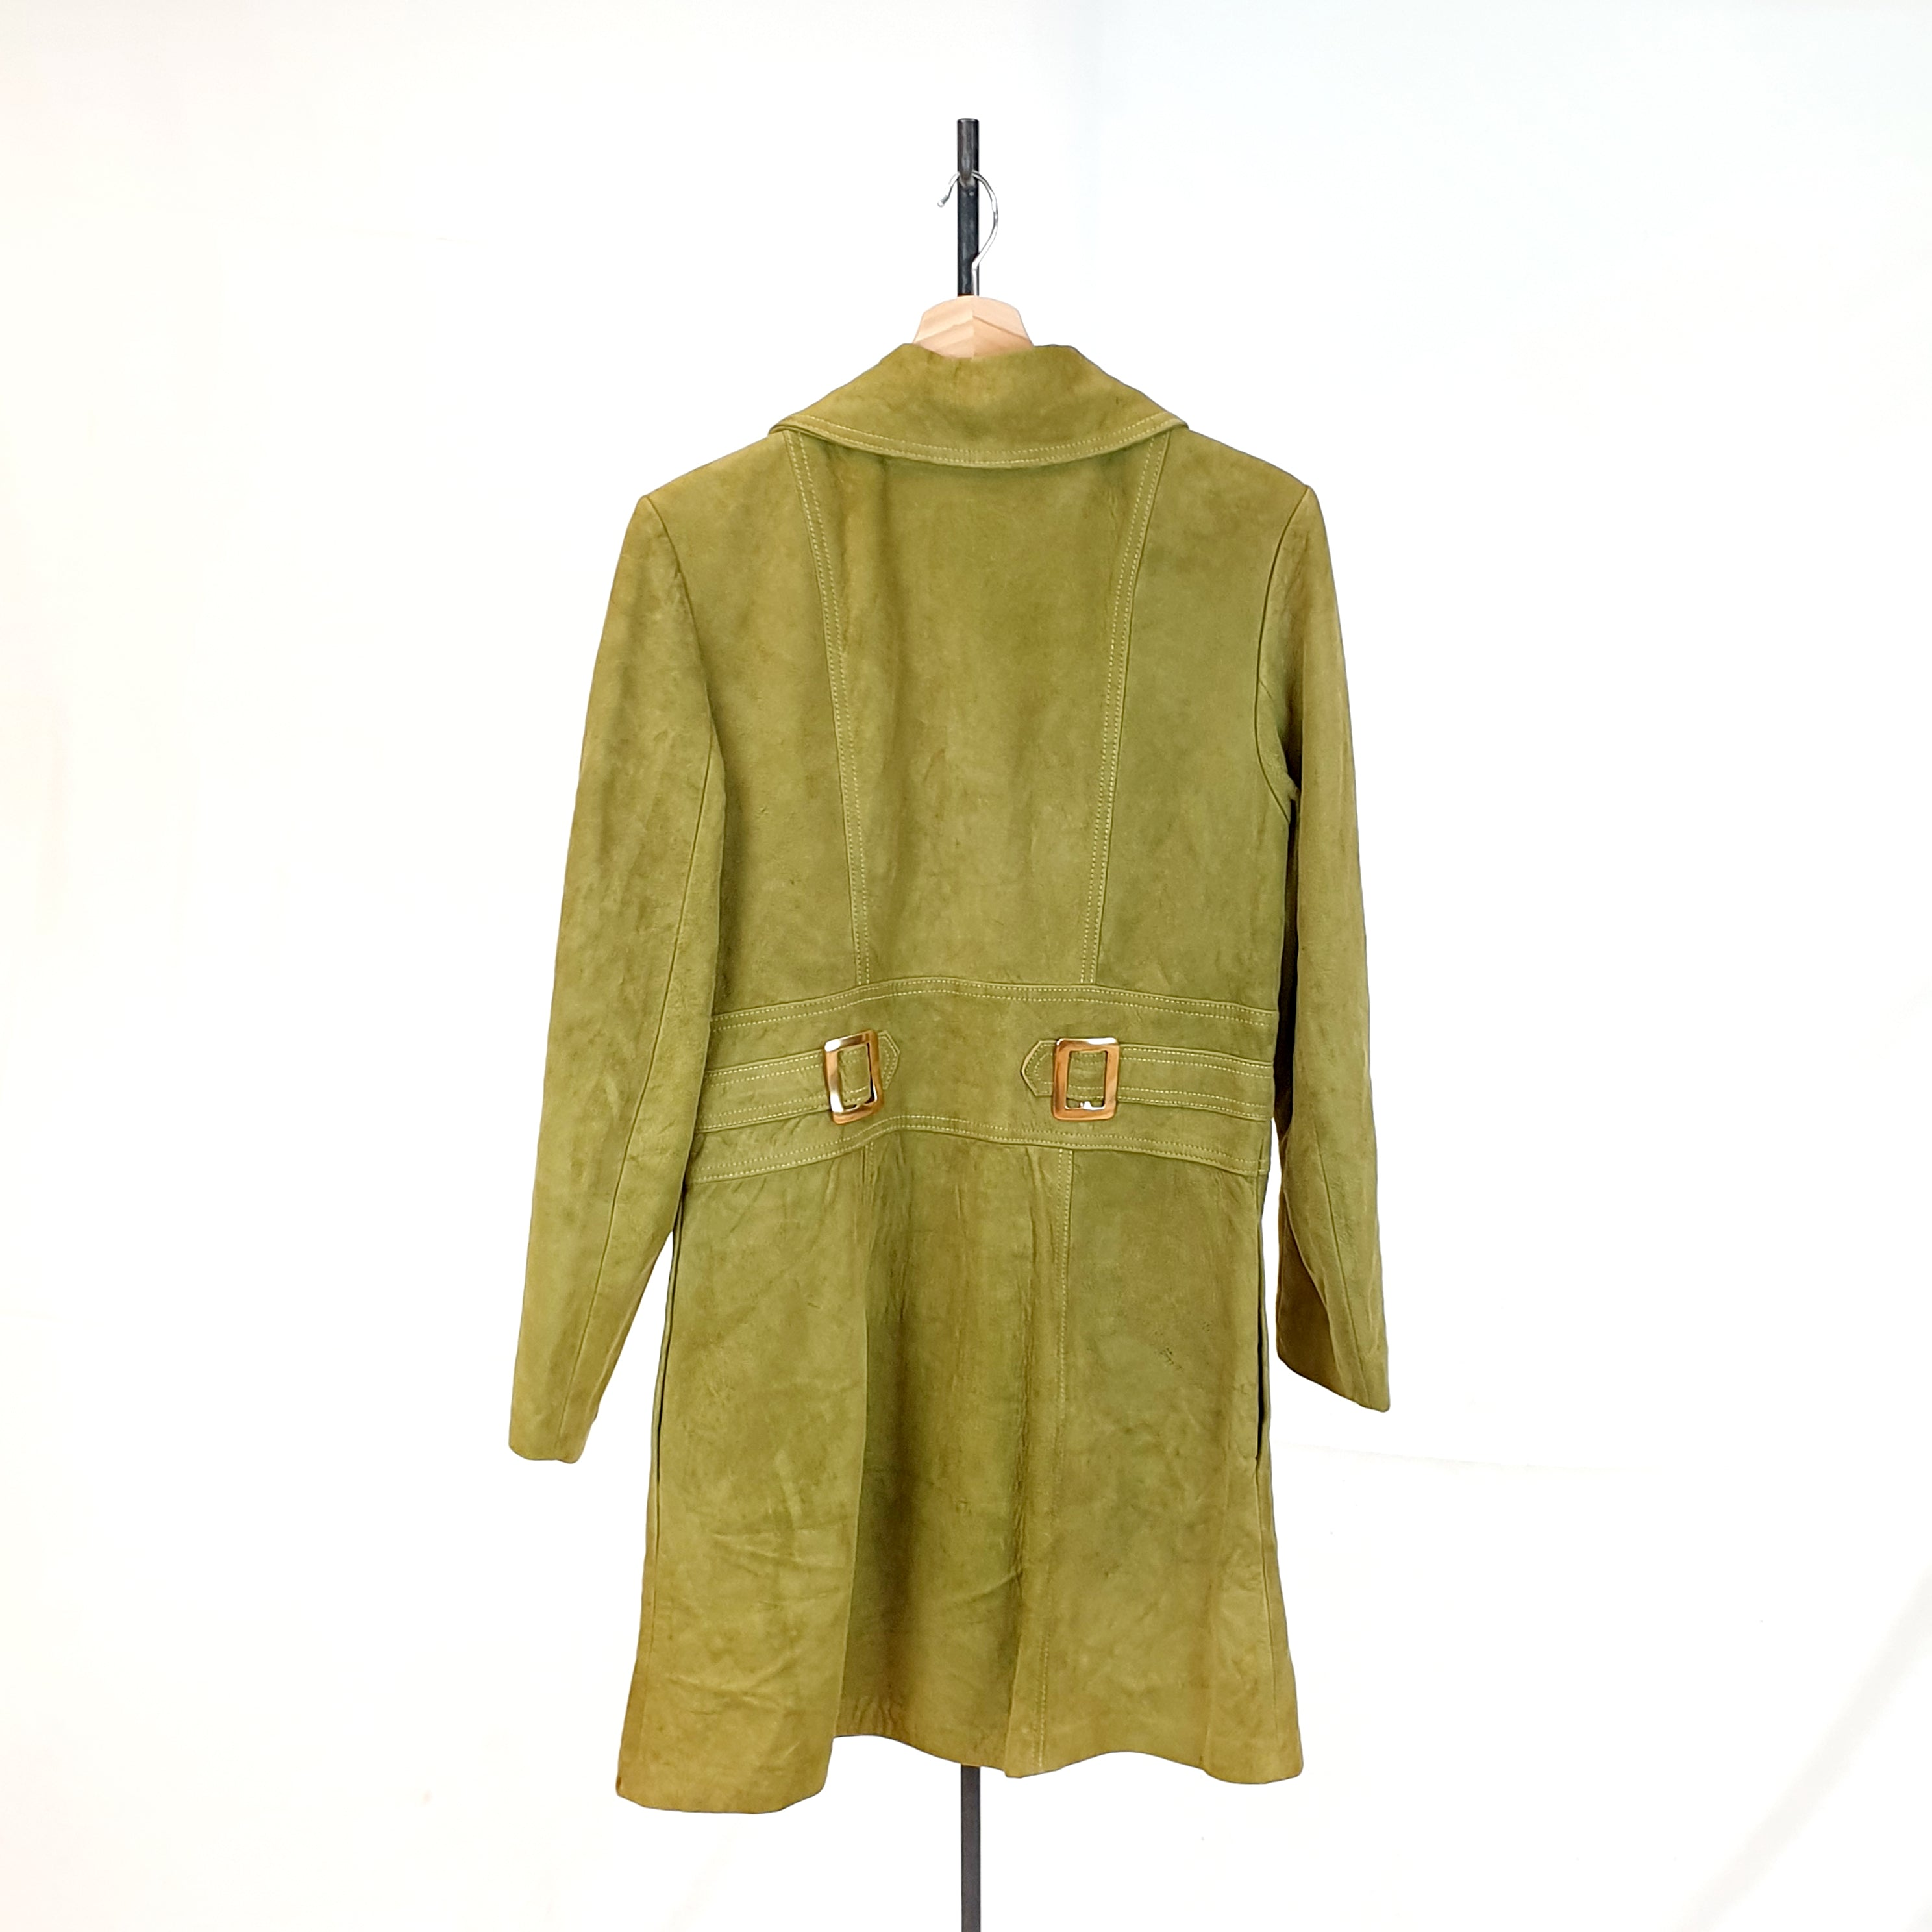 Green 70's Aesthetic Suede Coat